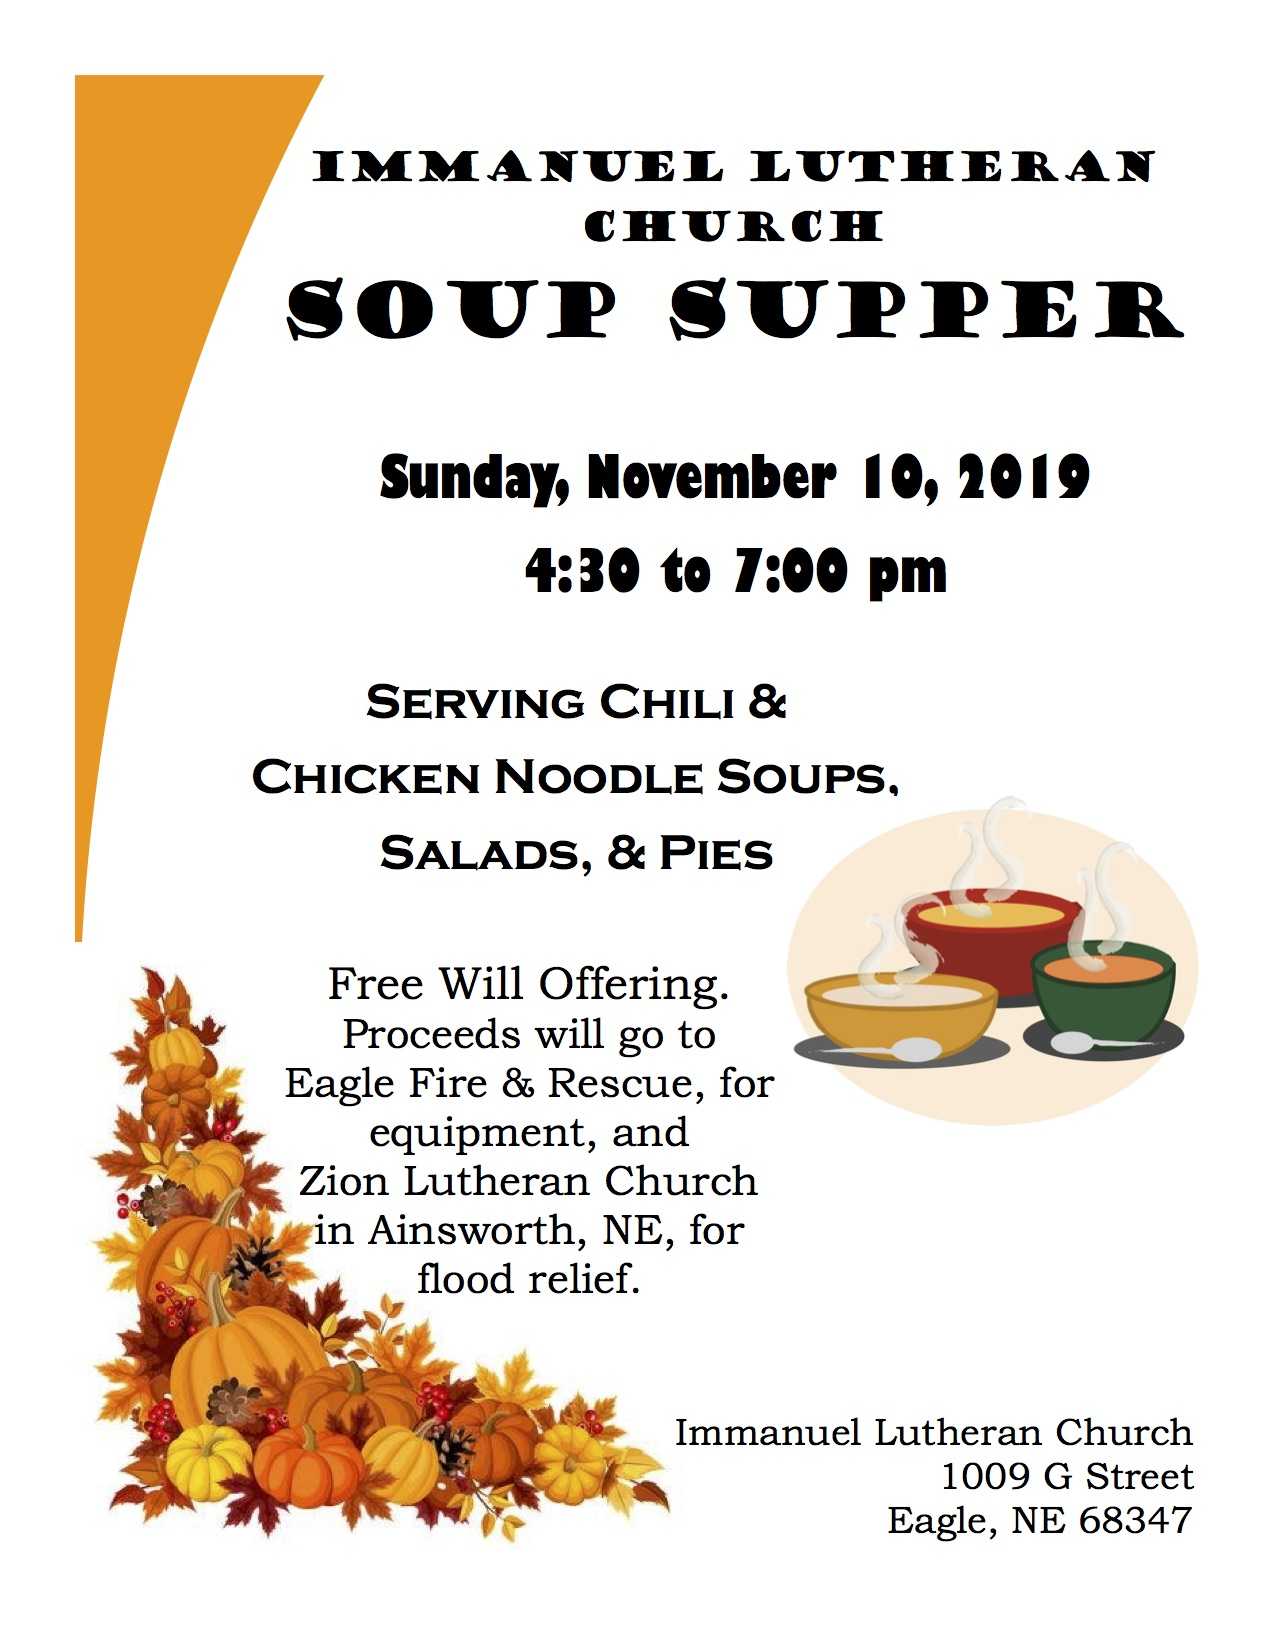 2019 Soup Supper Flyer